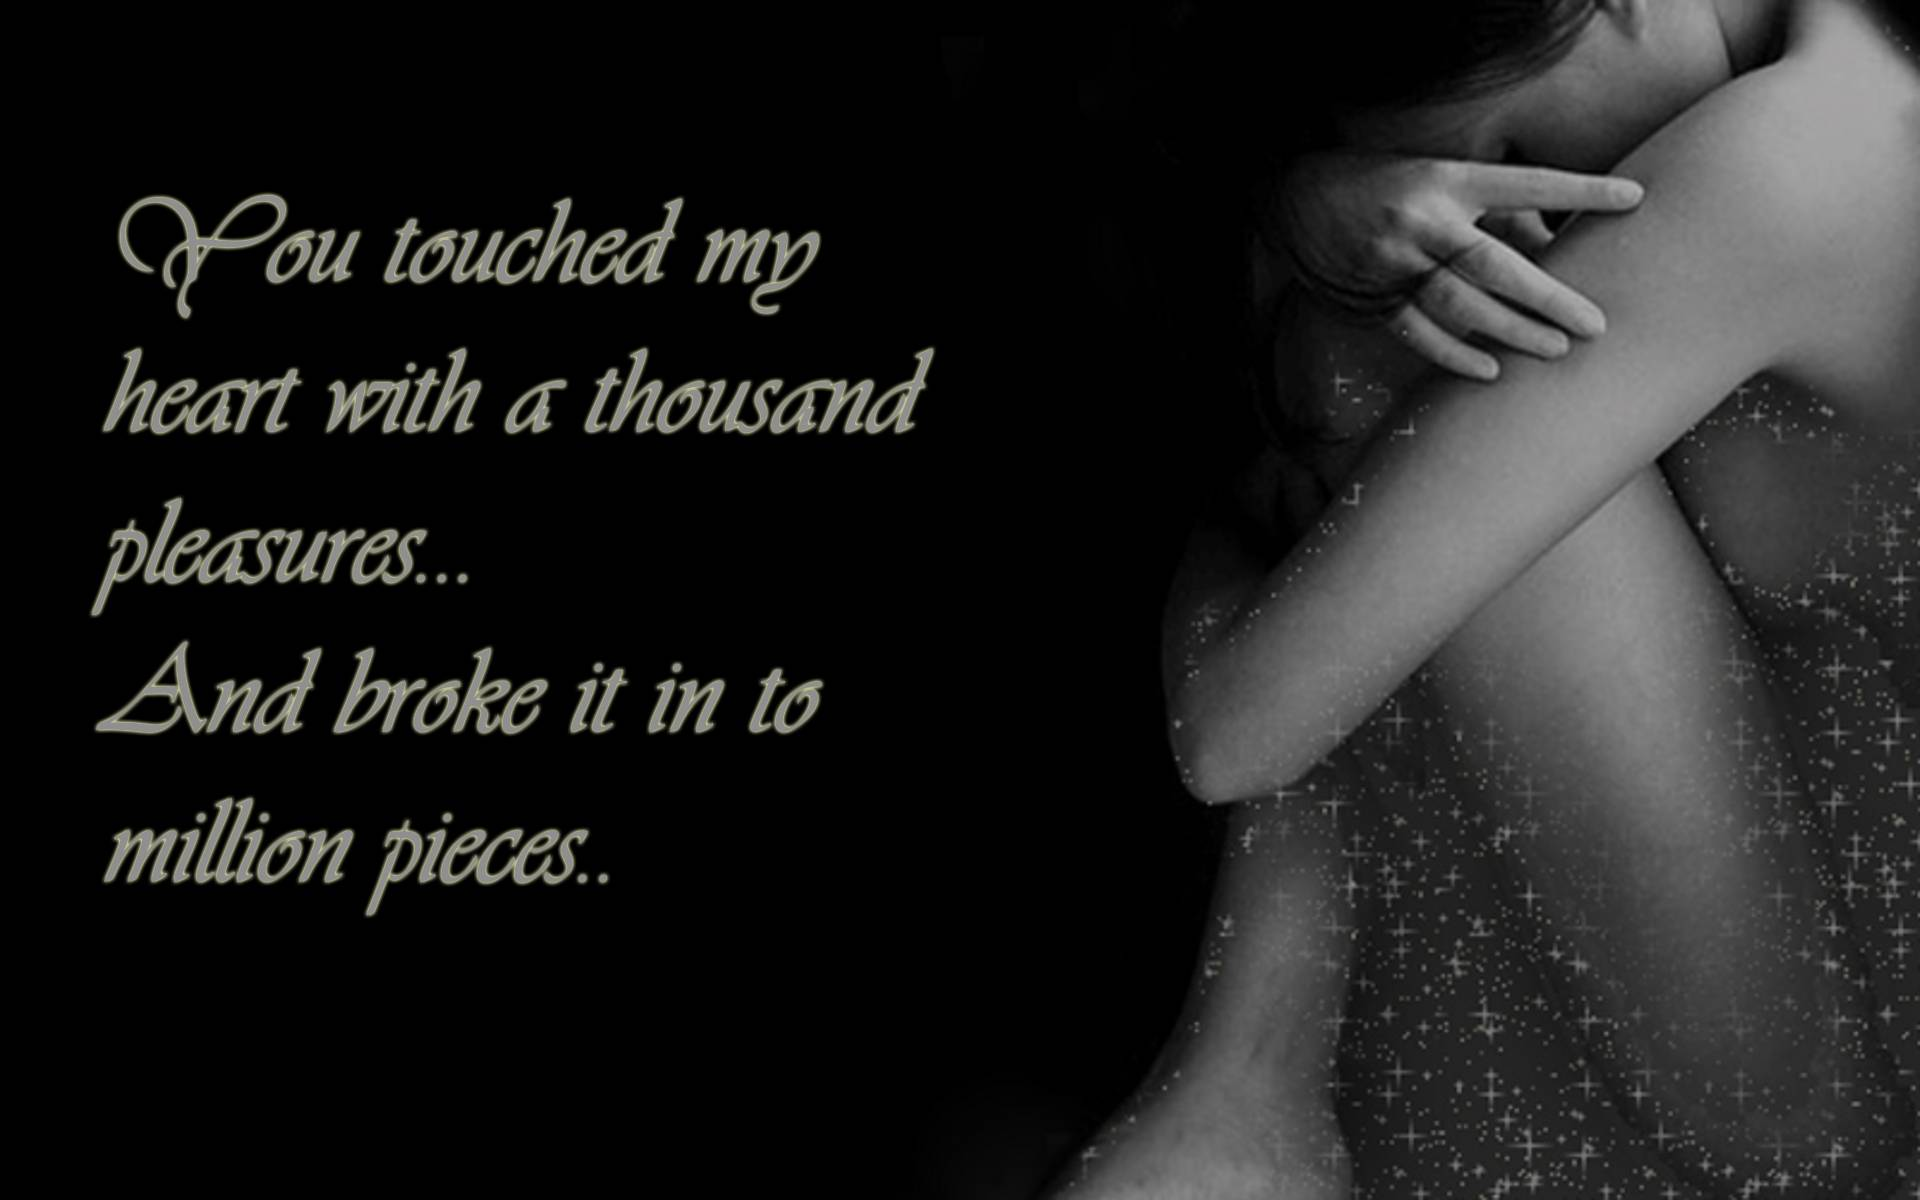 You Touched My Heart With a Thousand Pleasures, And Broke It In To Million Pieces